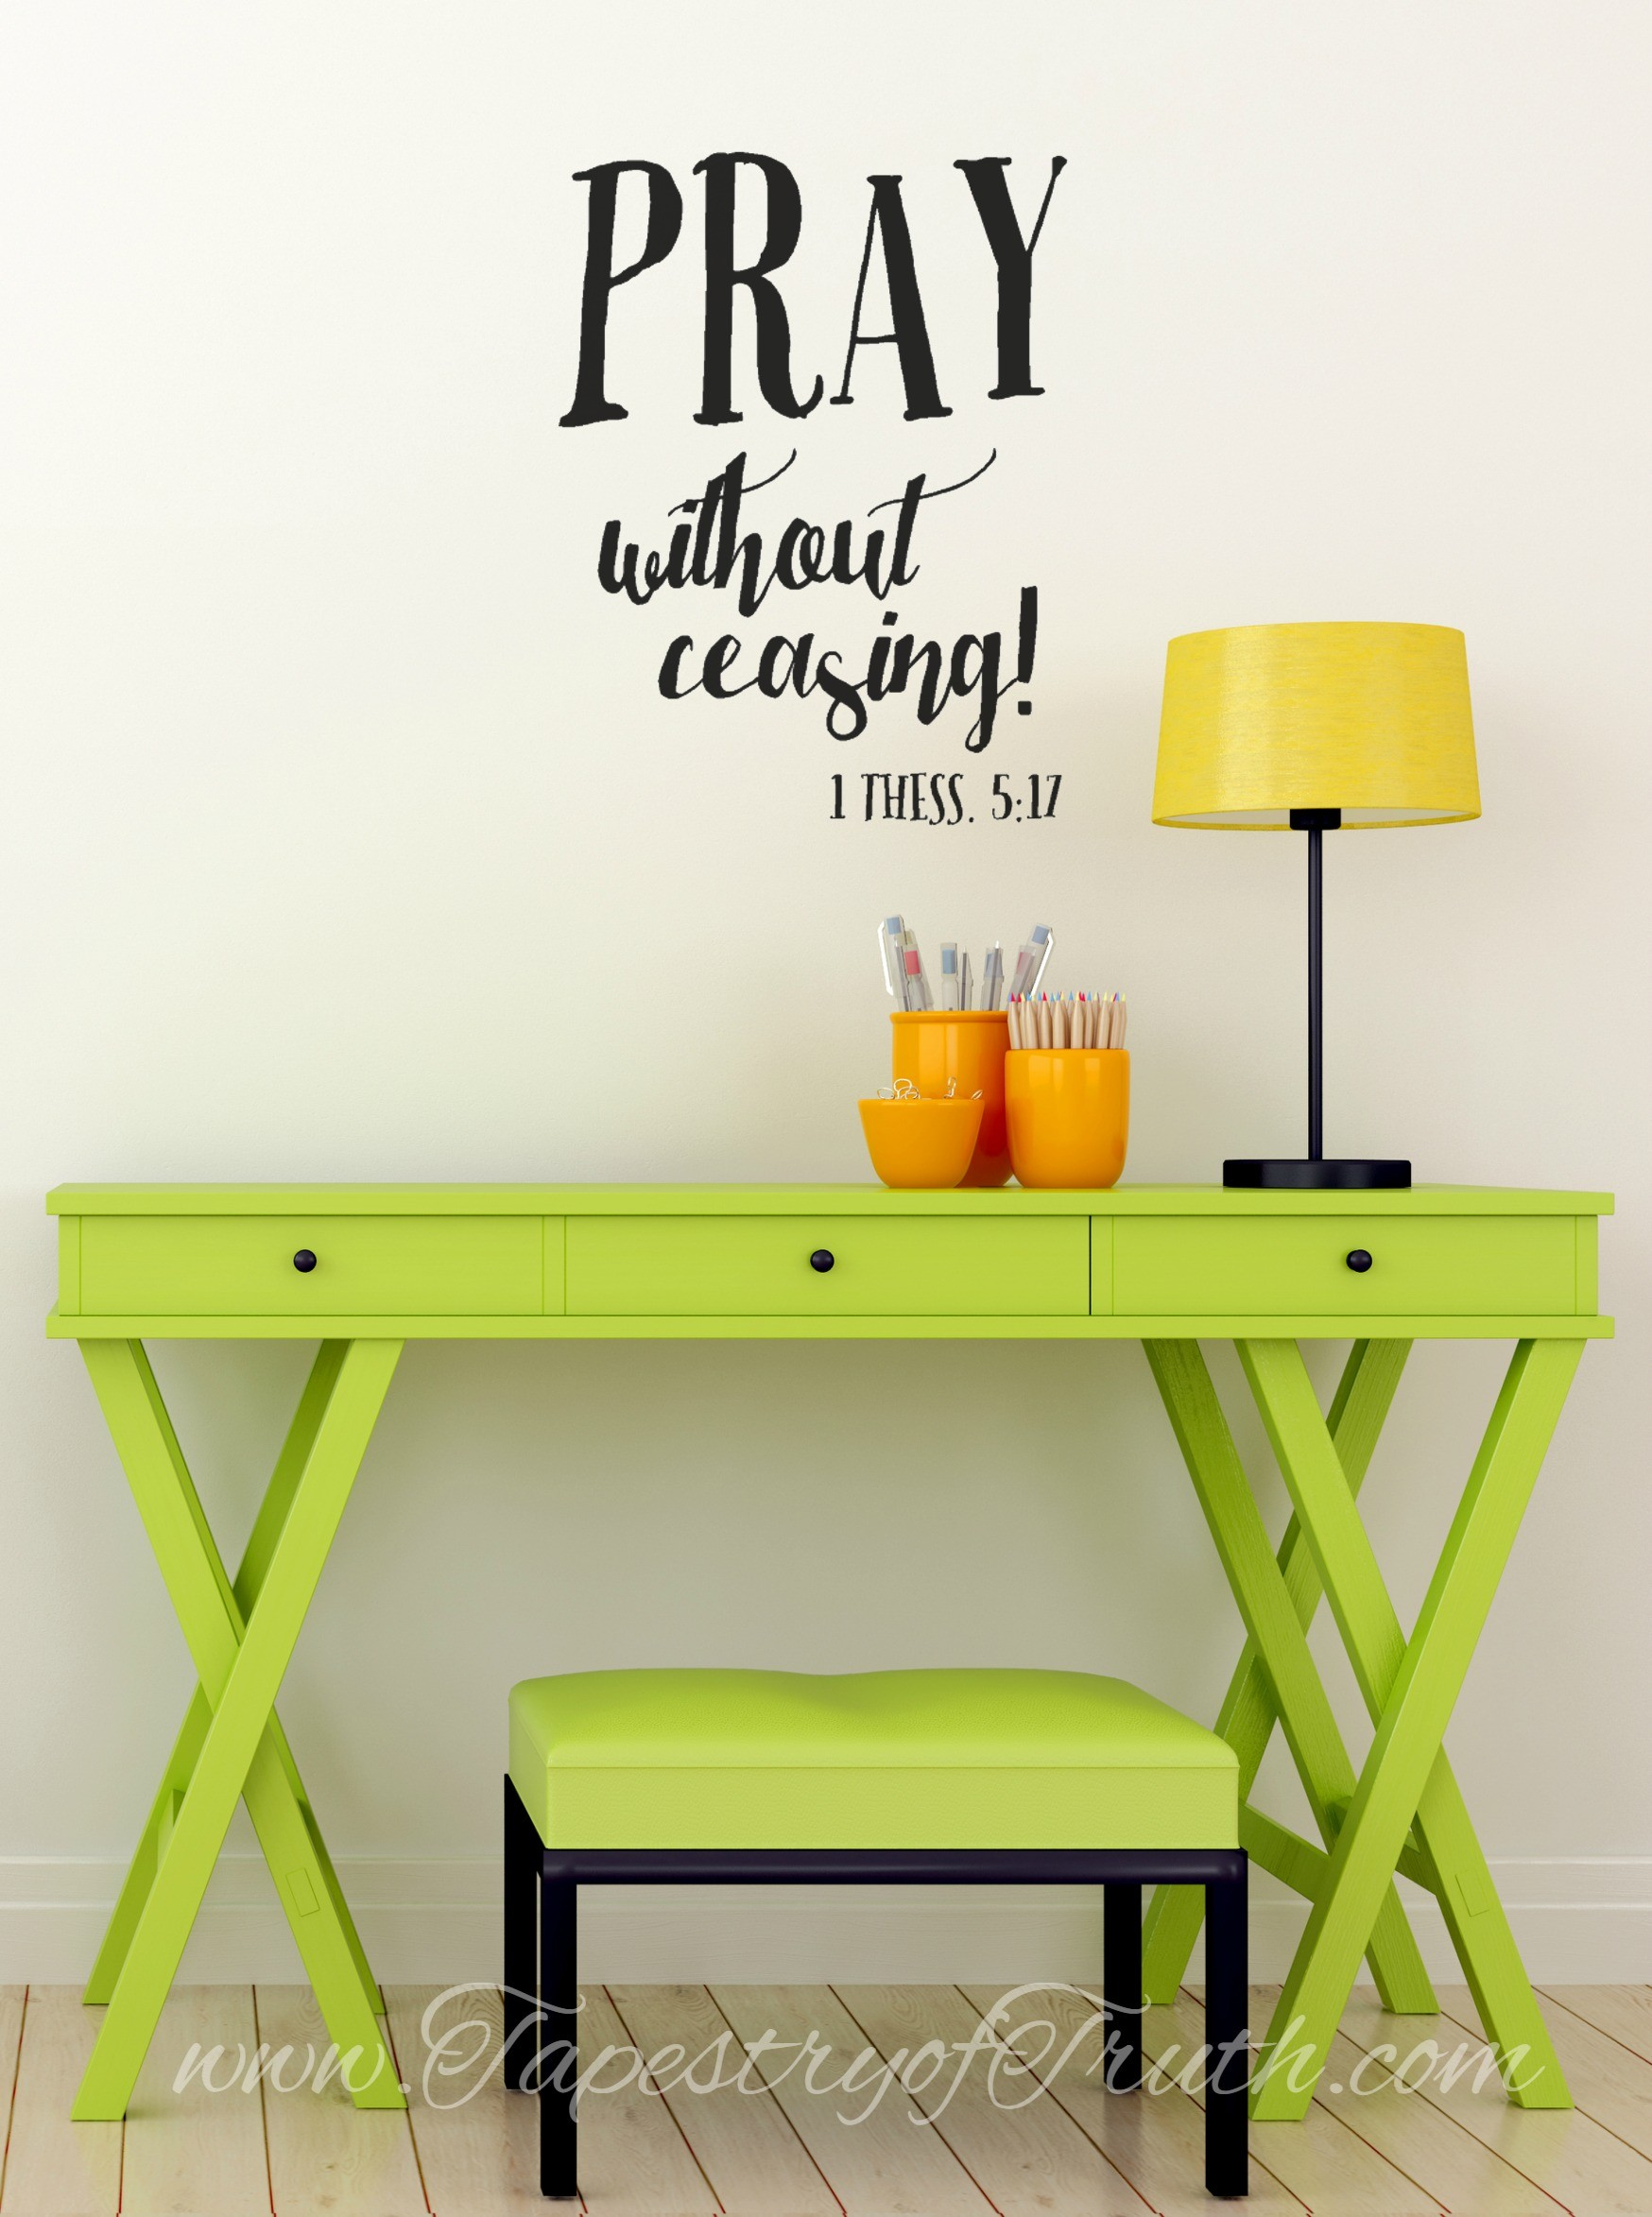 Pray without ceasing. 1 Thess. 5:17